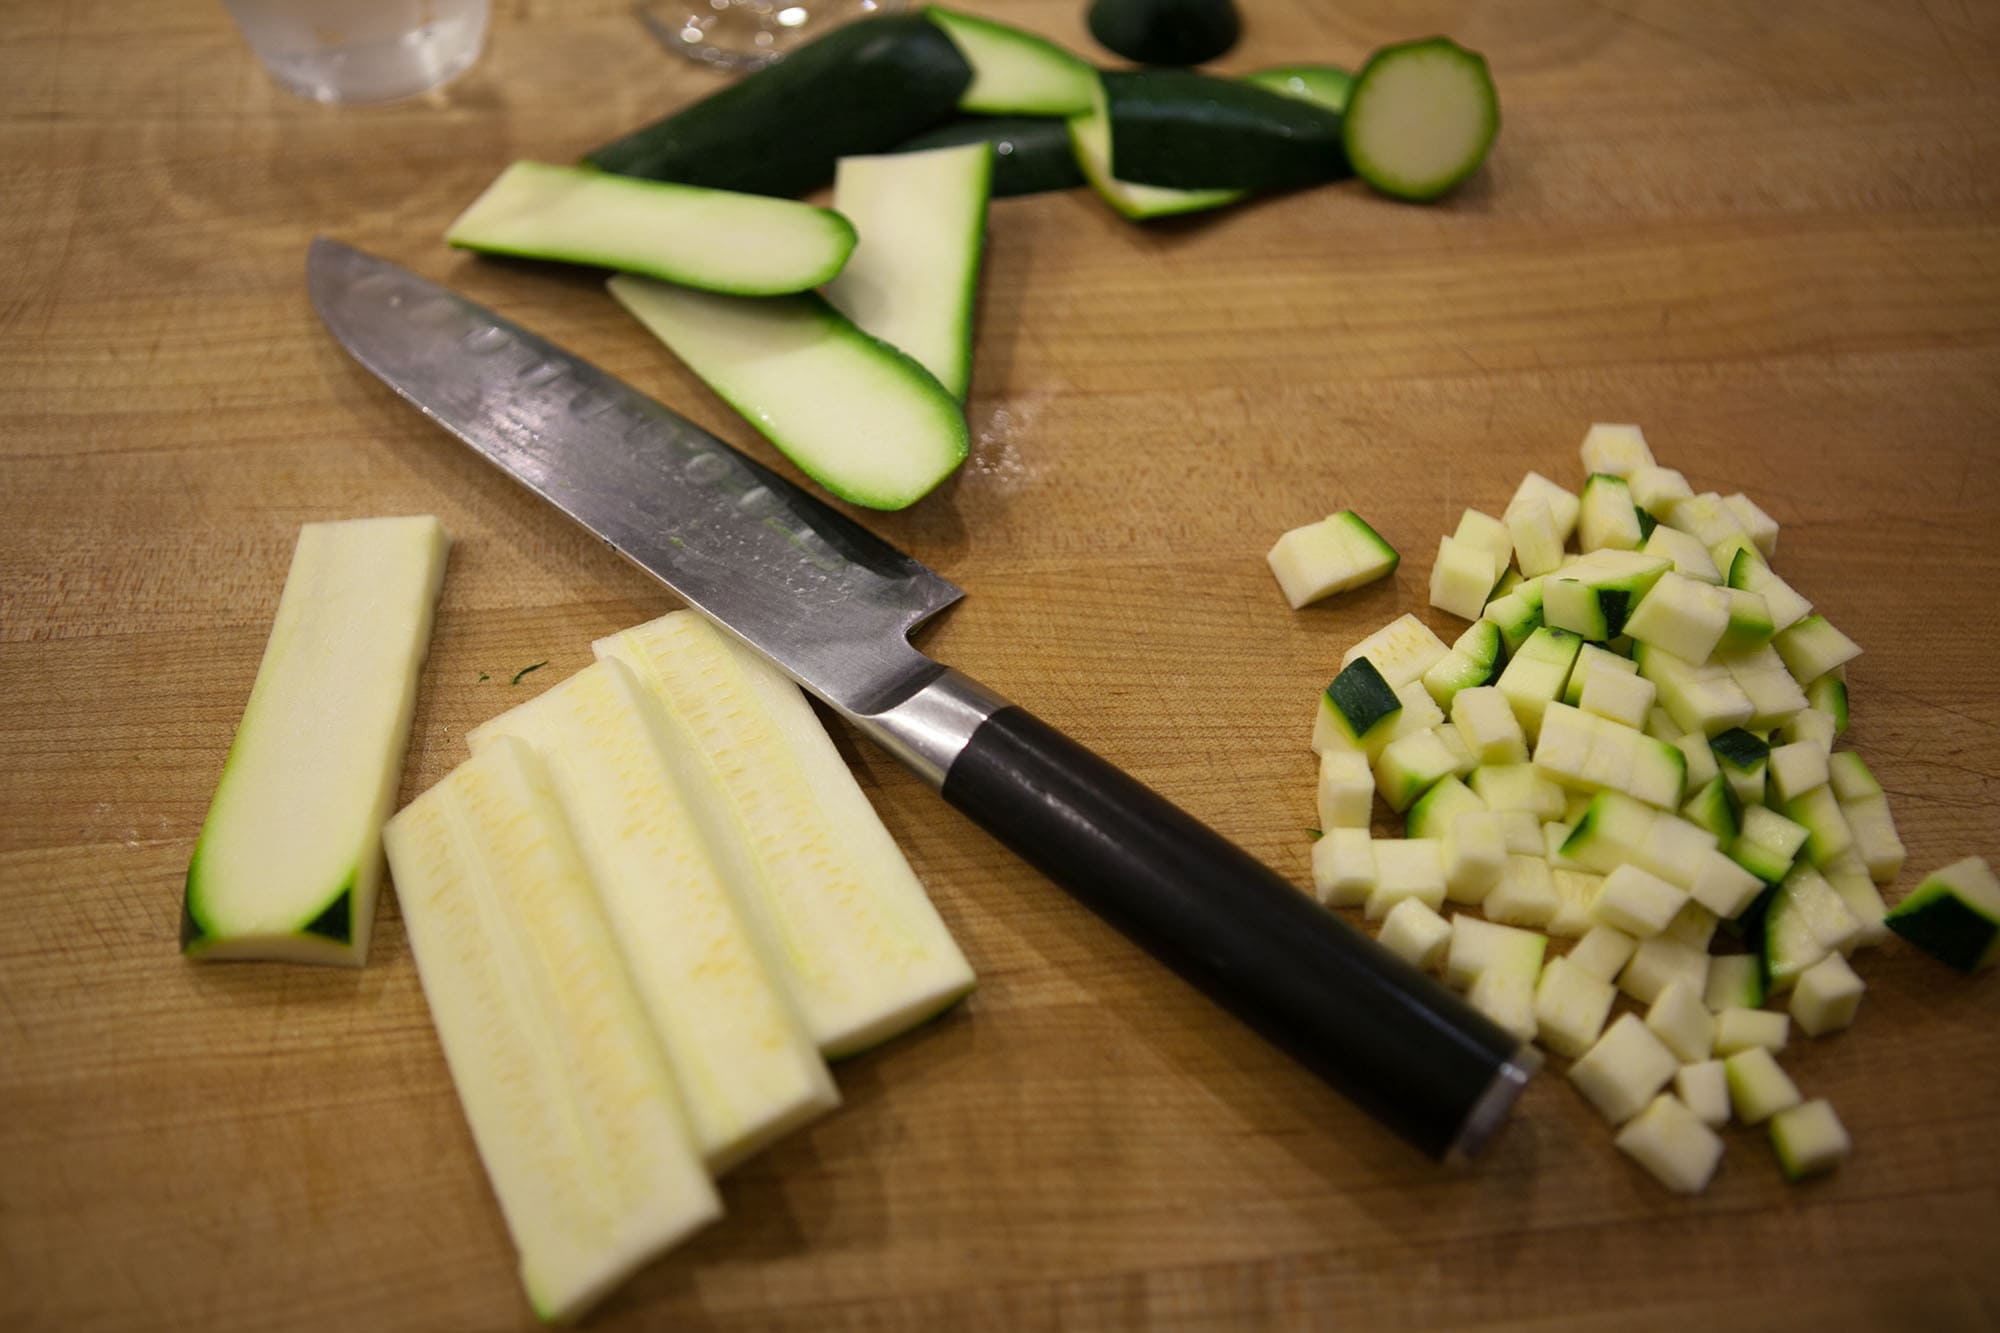 Learn how to use a kitchen knife like a chef - Taking a Knife Skills Class at The Chopping Block in Lincoln Square, Chicago